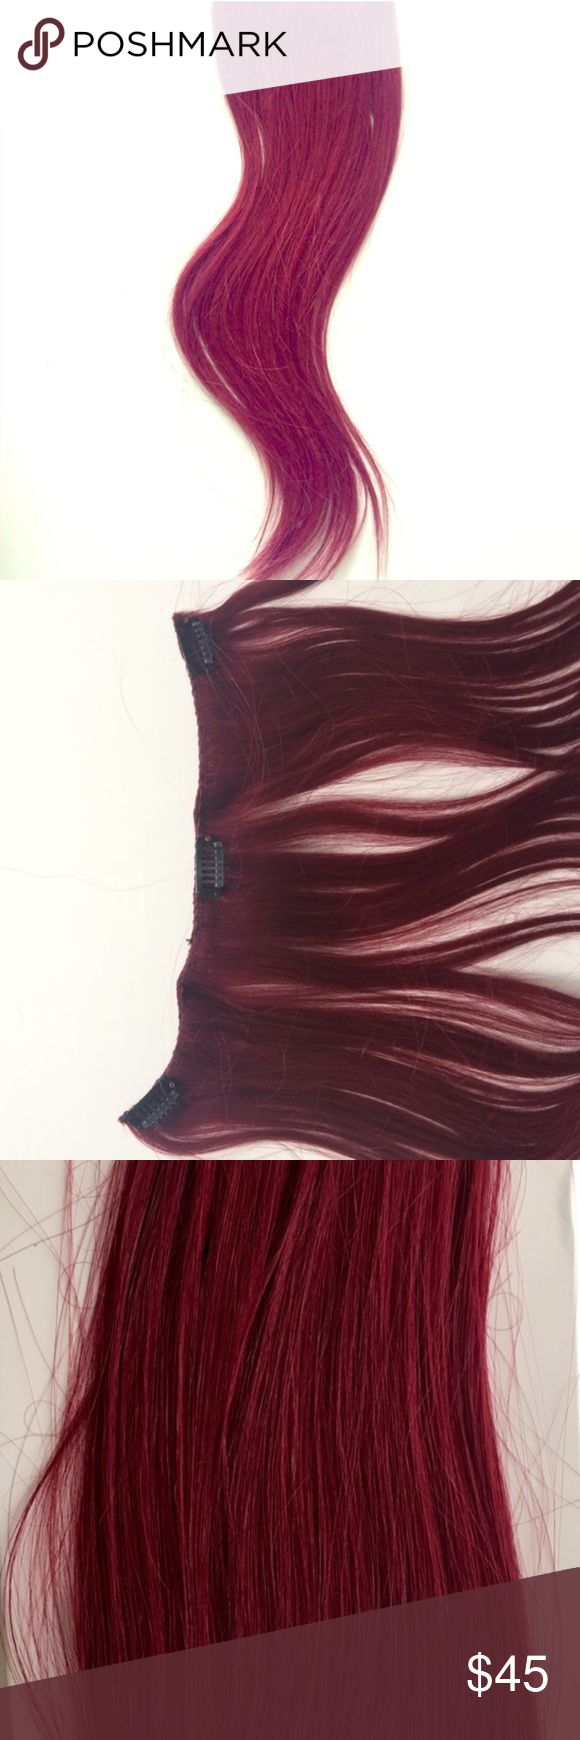 Burgundy human hair extension Burgundy red clip on human hair extensions. Extra silky Korean hair, can be curled, straightened, washed, dyed. One full doubled row, ear to ear Accessories Hair Accessories